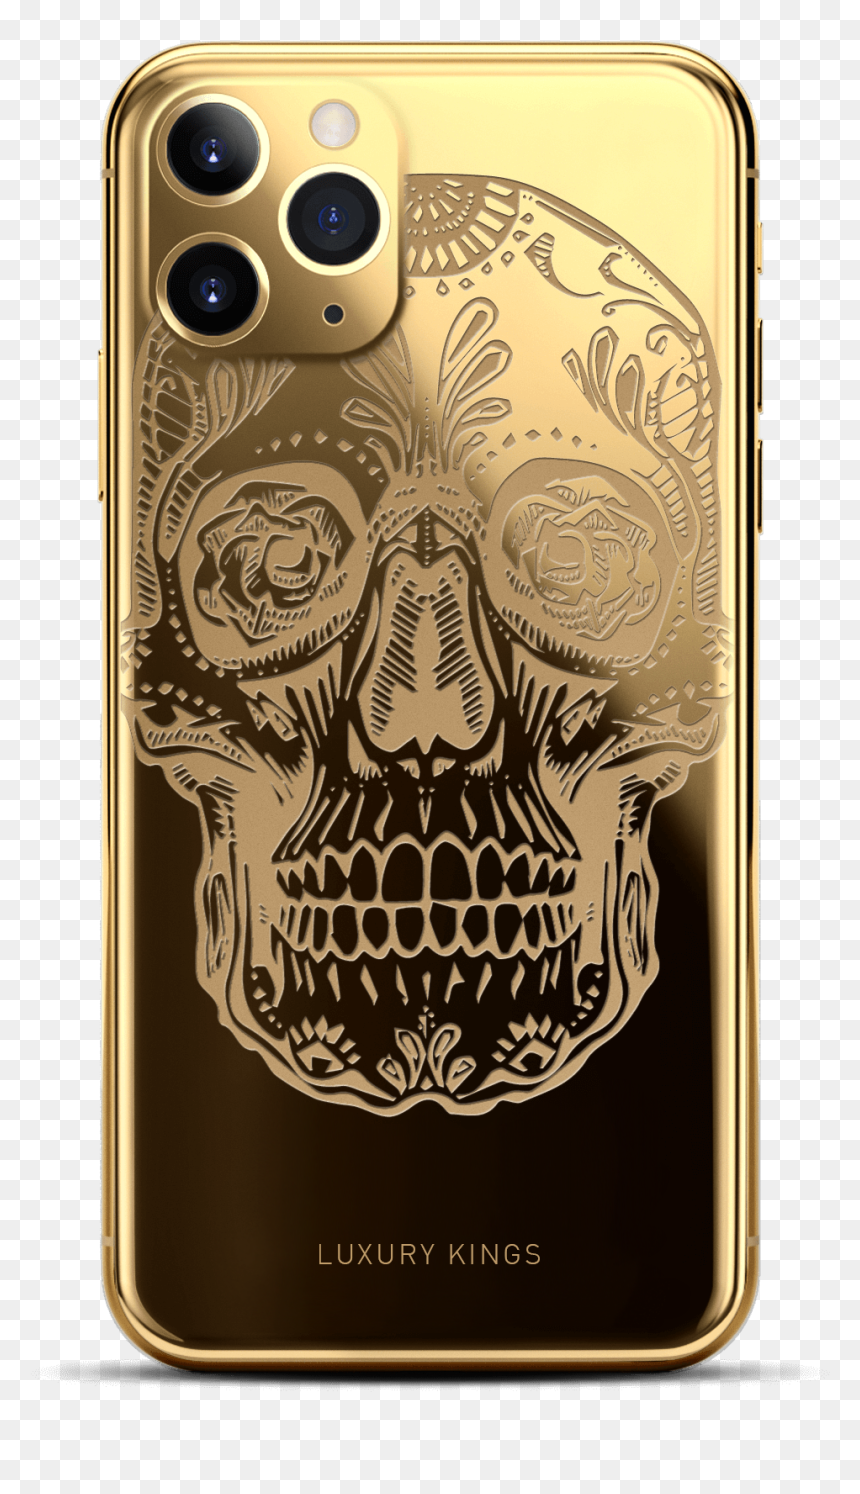 Iphone 11 Pro Max Special Edition Hd Png Download Vhv